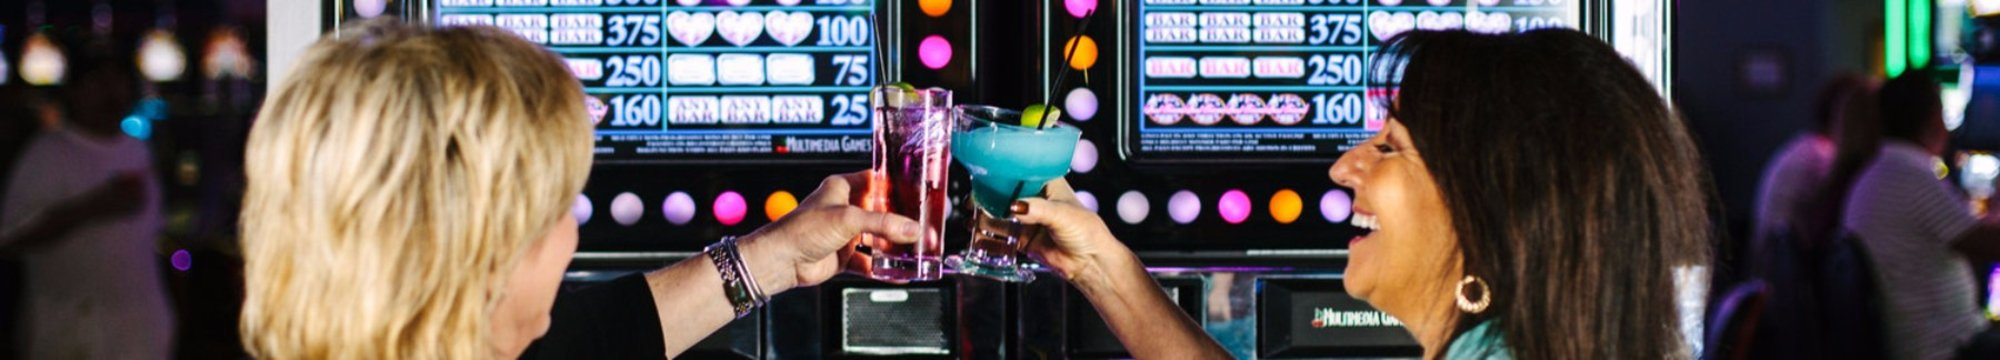 Have more fun at Grand Lake Casino